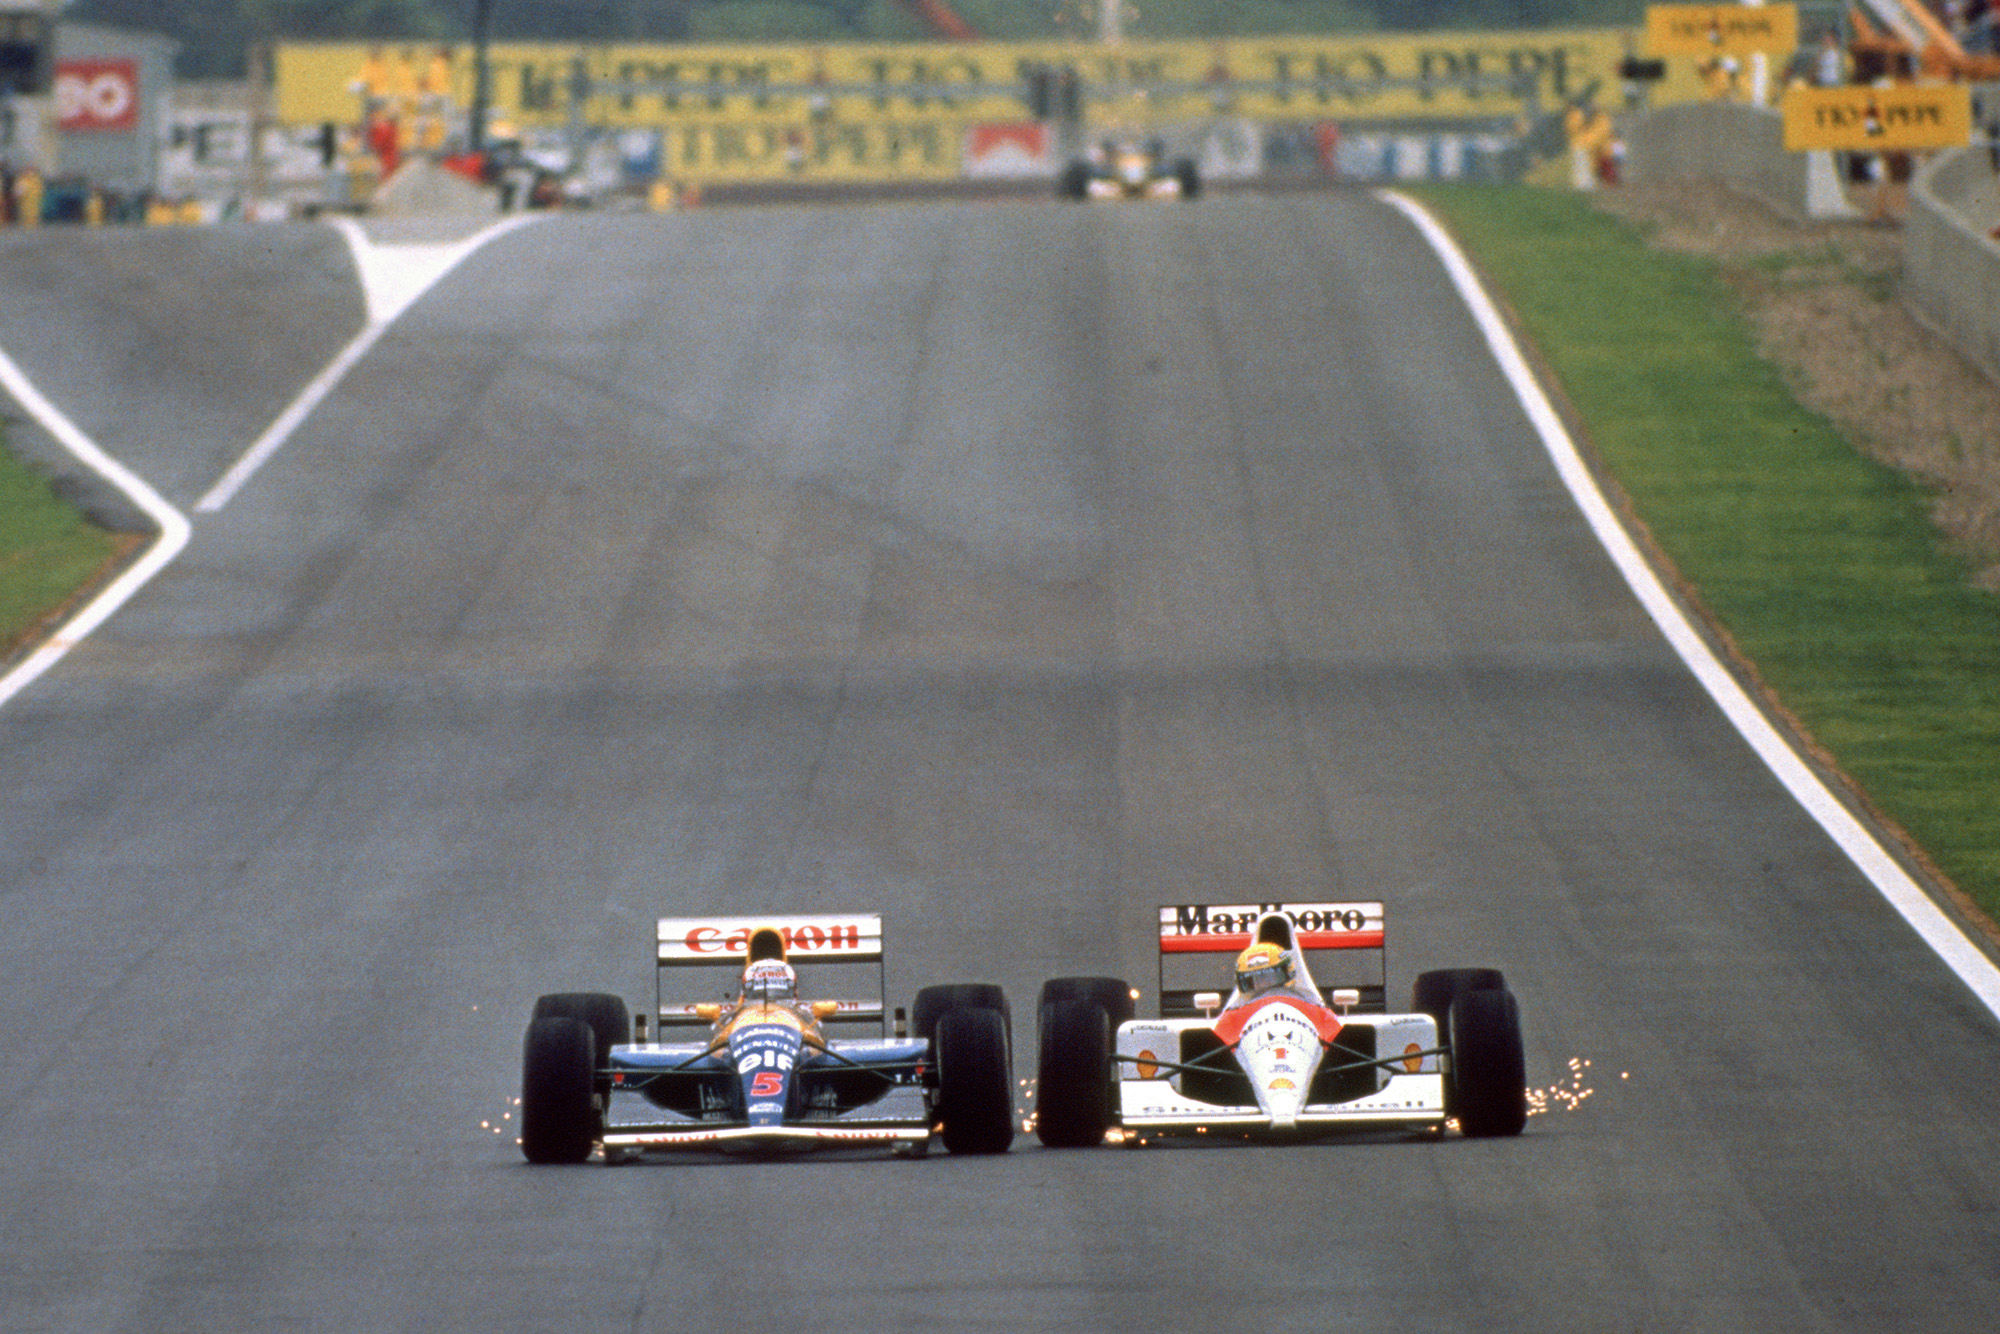 Ayrton Senna is side by side with Nigel Mansell at the 1992 Spanish Grand Prix